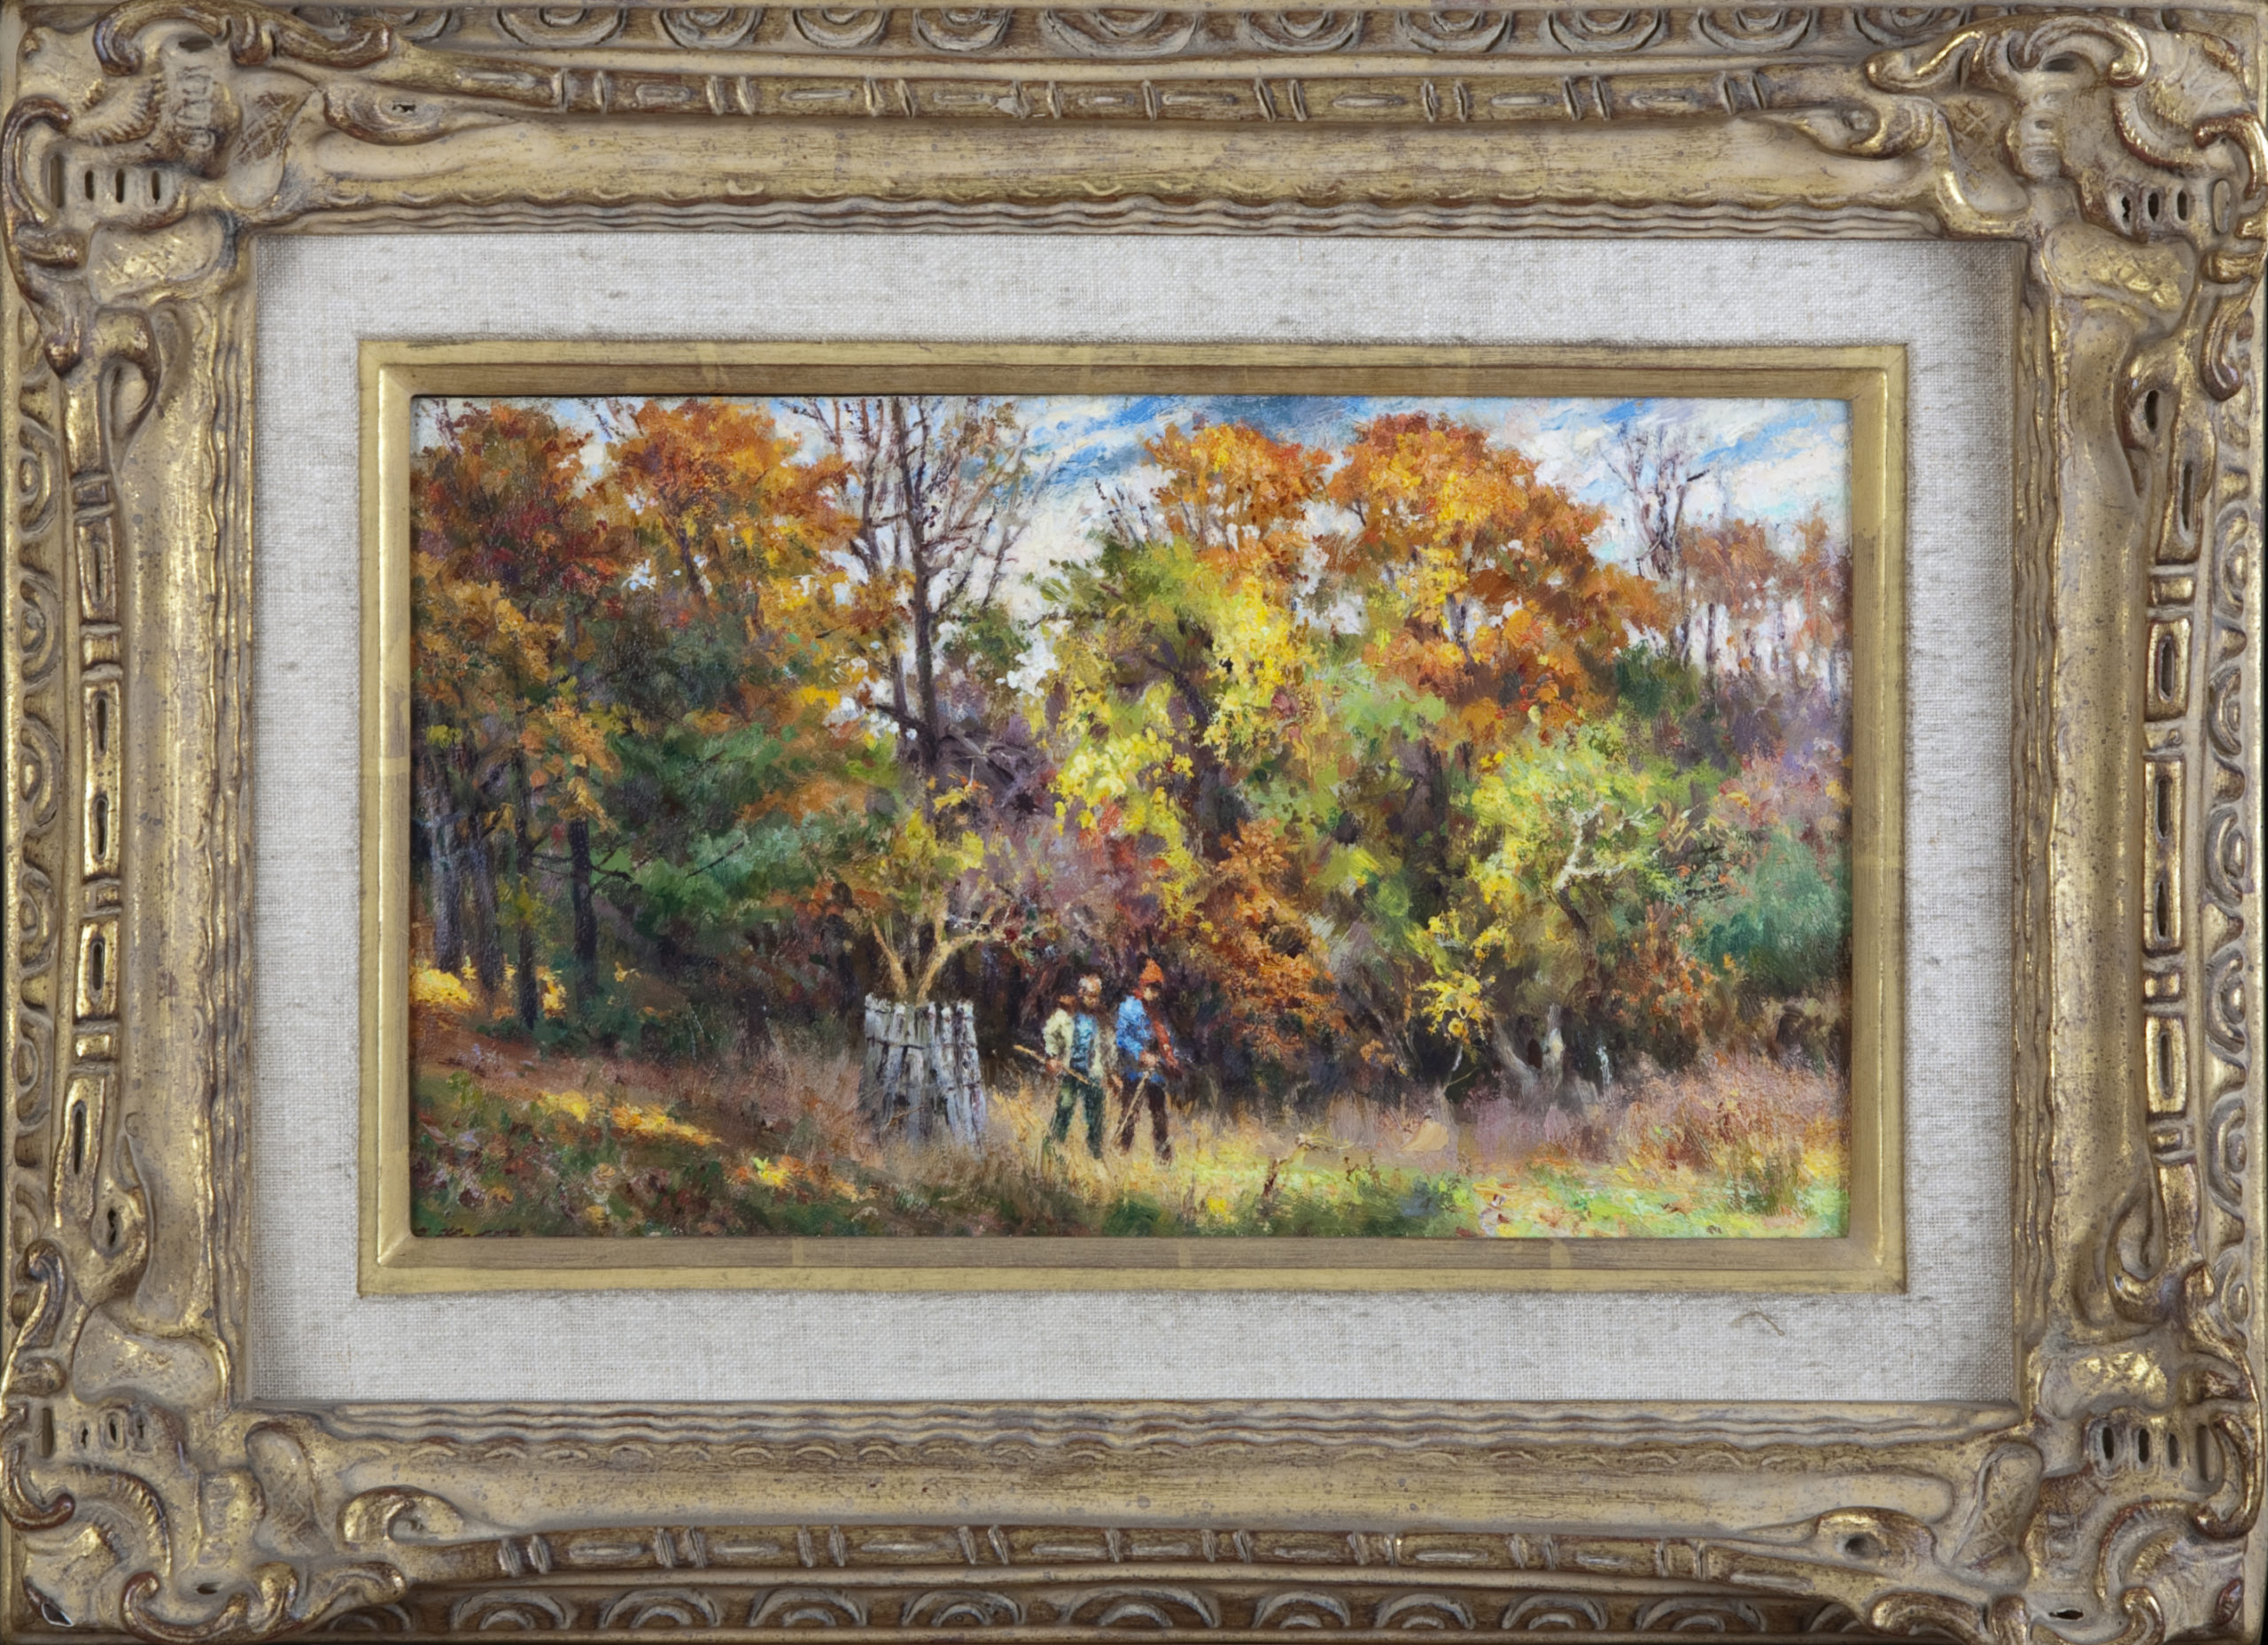 042 Autumn scene 2 people walking - Oil on Masonite - 12 x 7 - Frame: 18.5 x 13.5 x 3